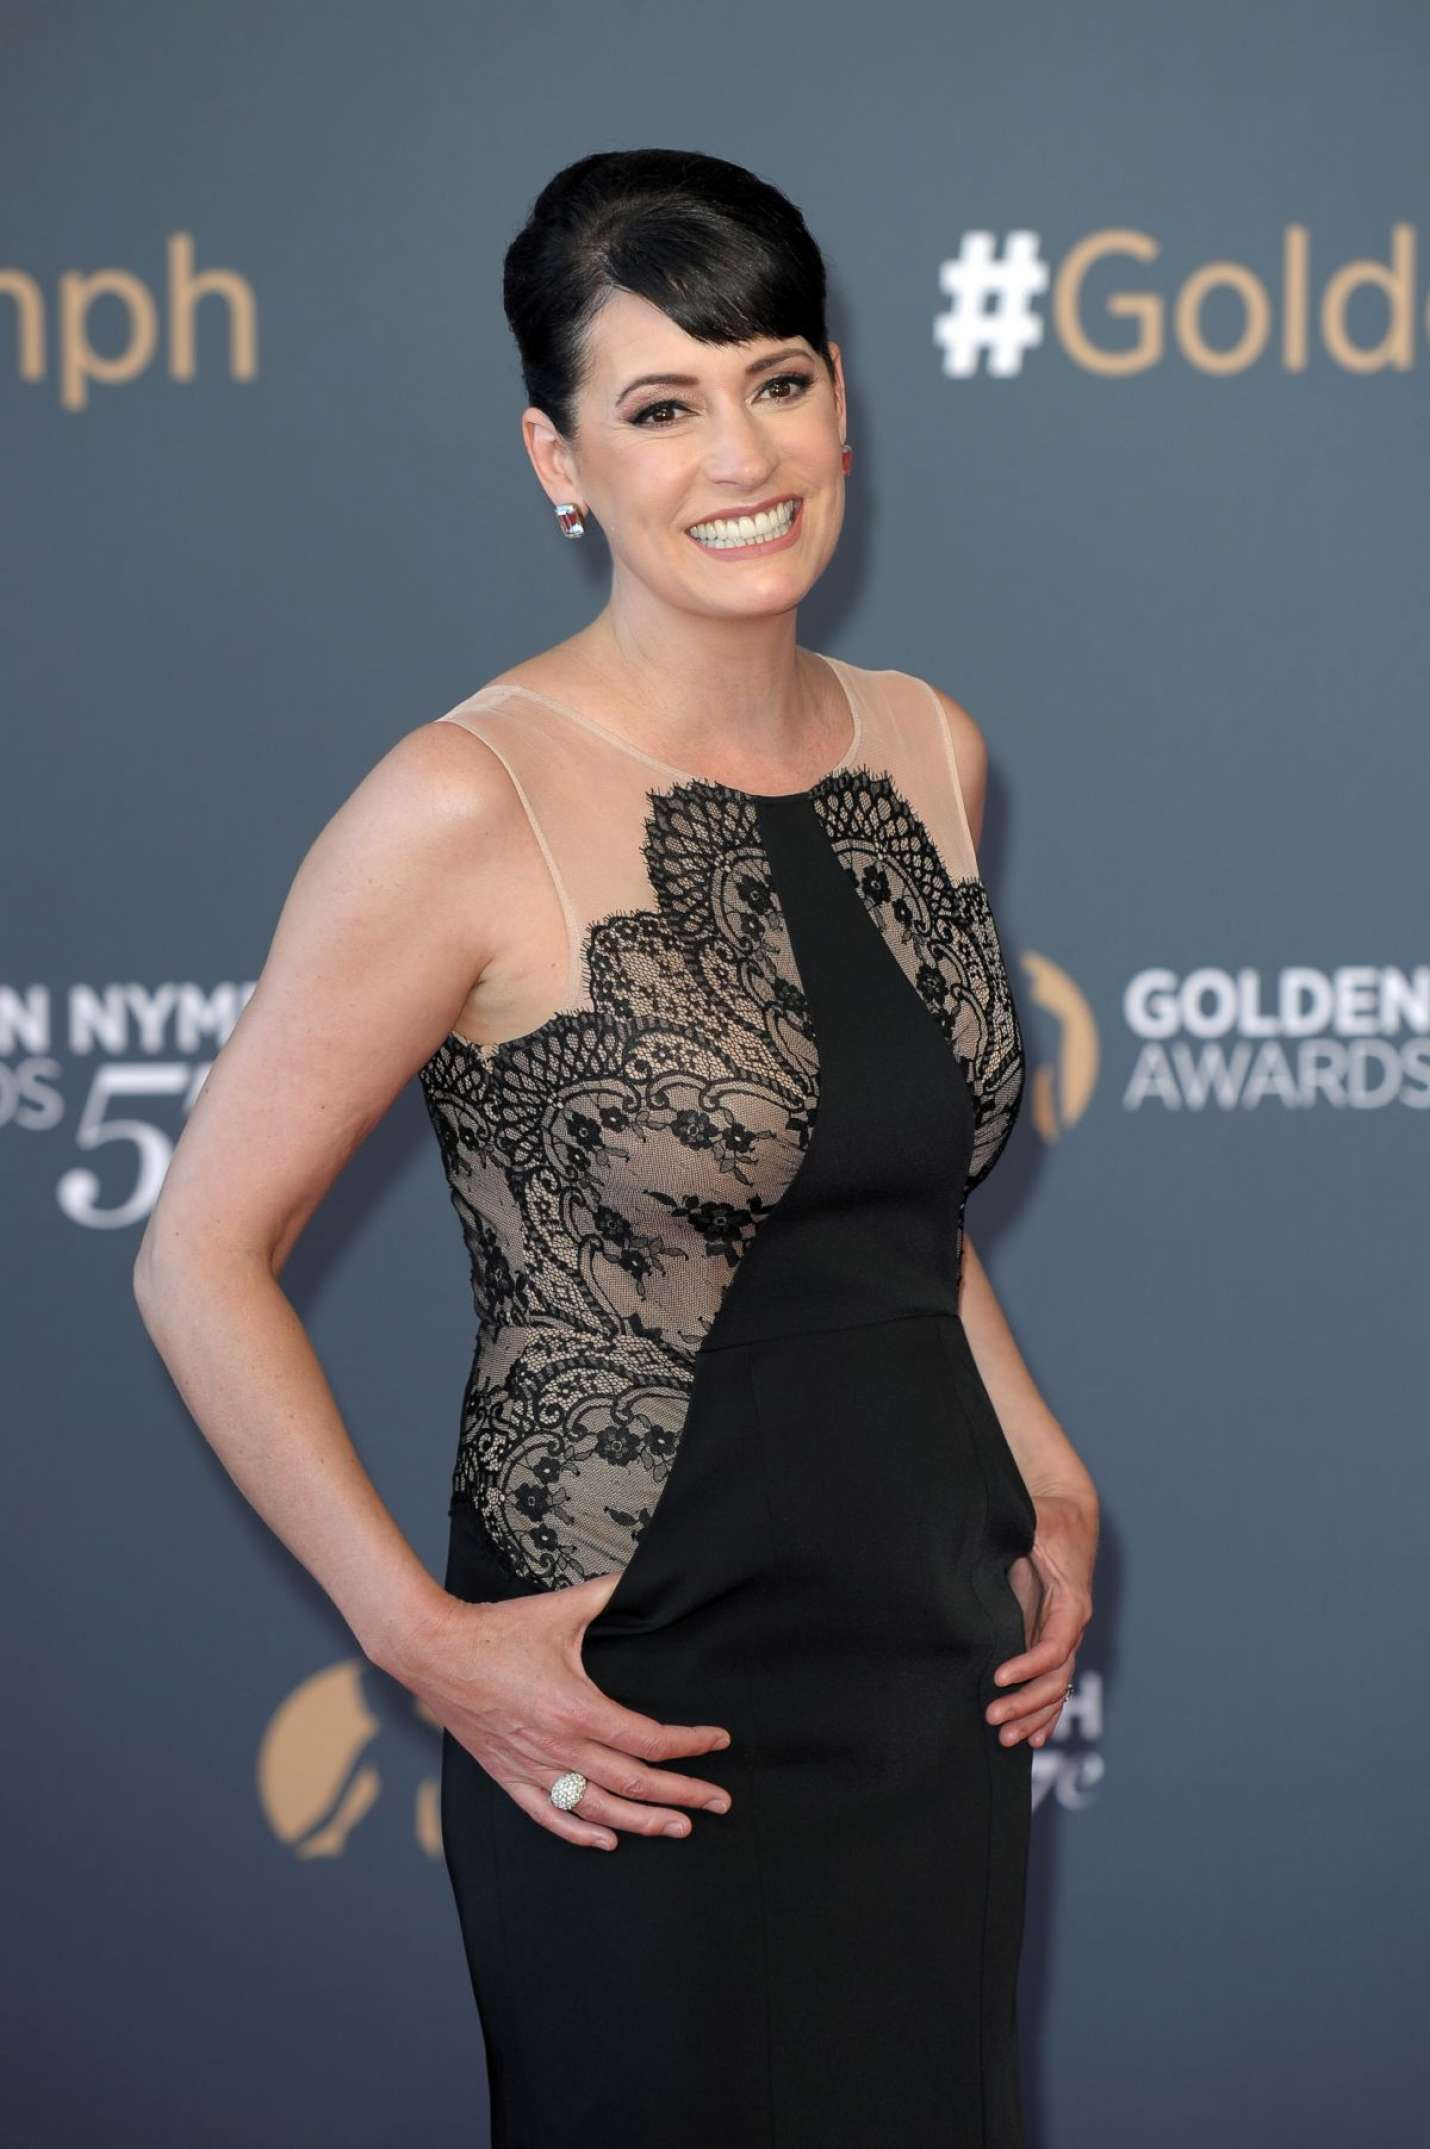 Paget Brewster nude (67 foto and video), Pussy, Bikini, Twitter, braless 2015